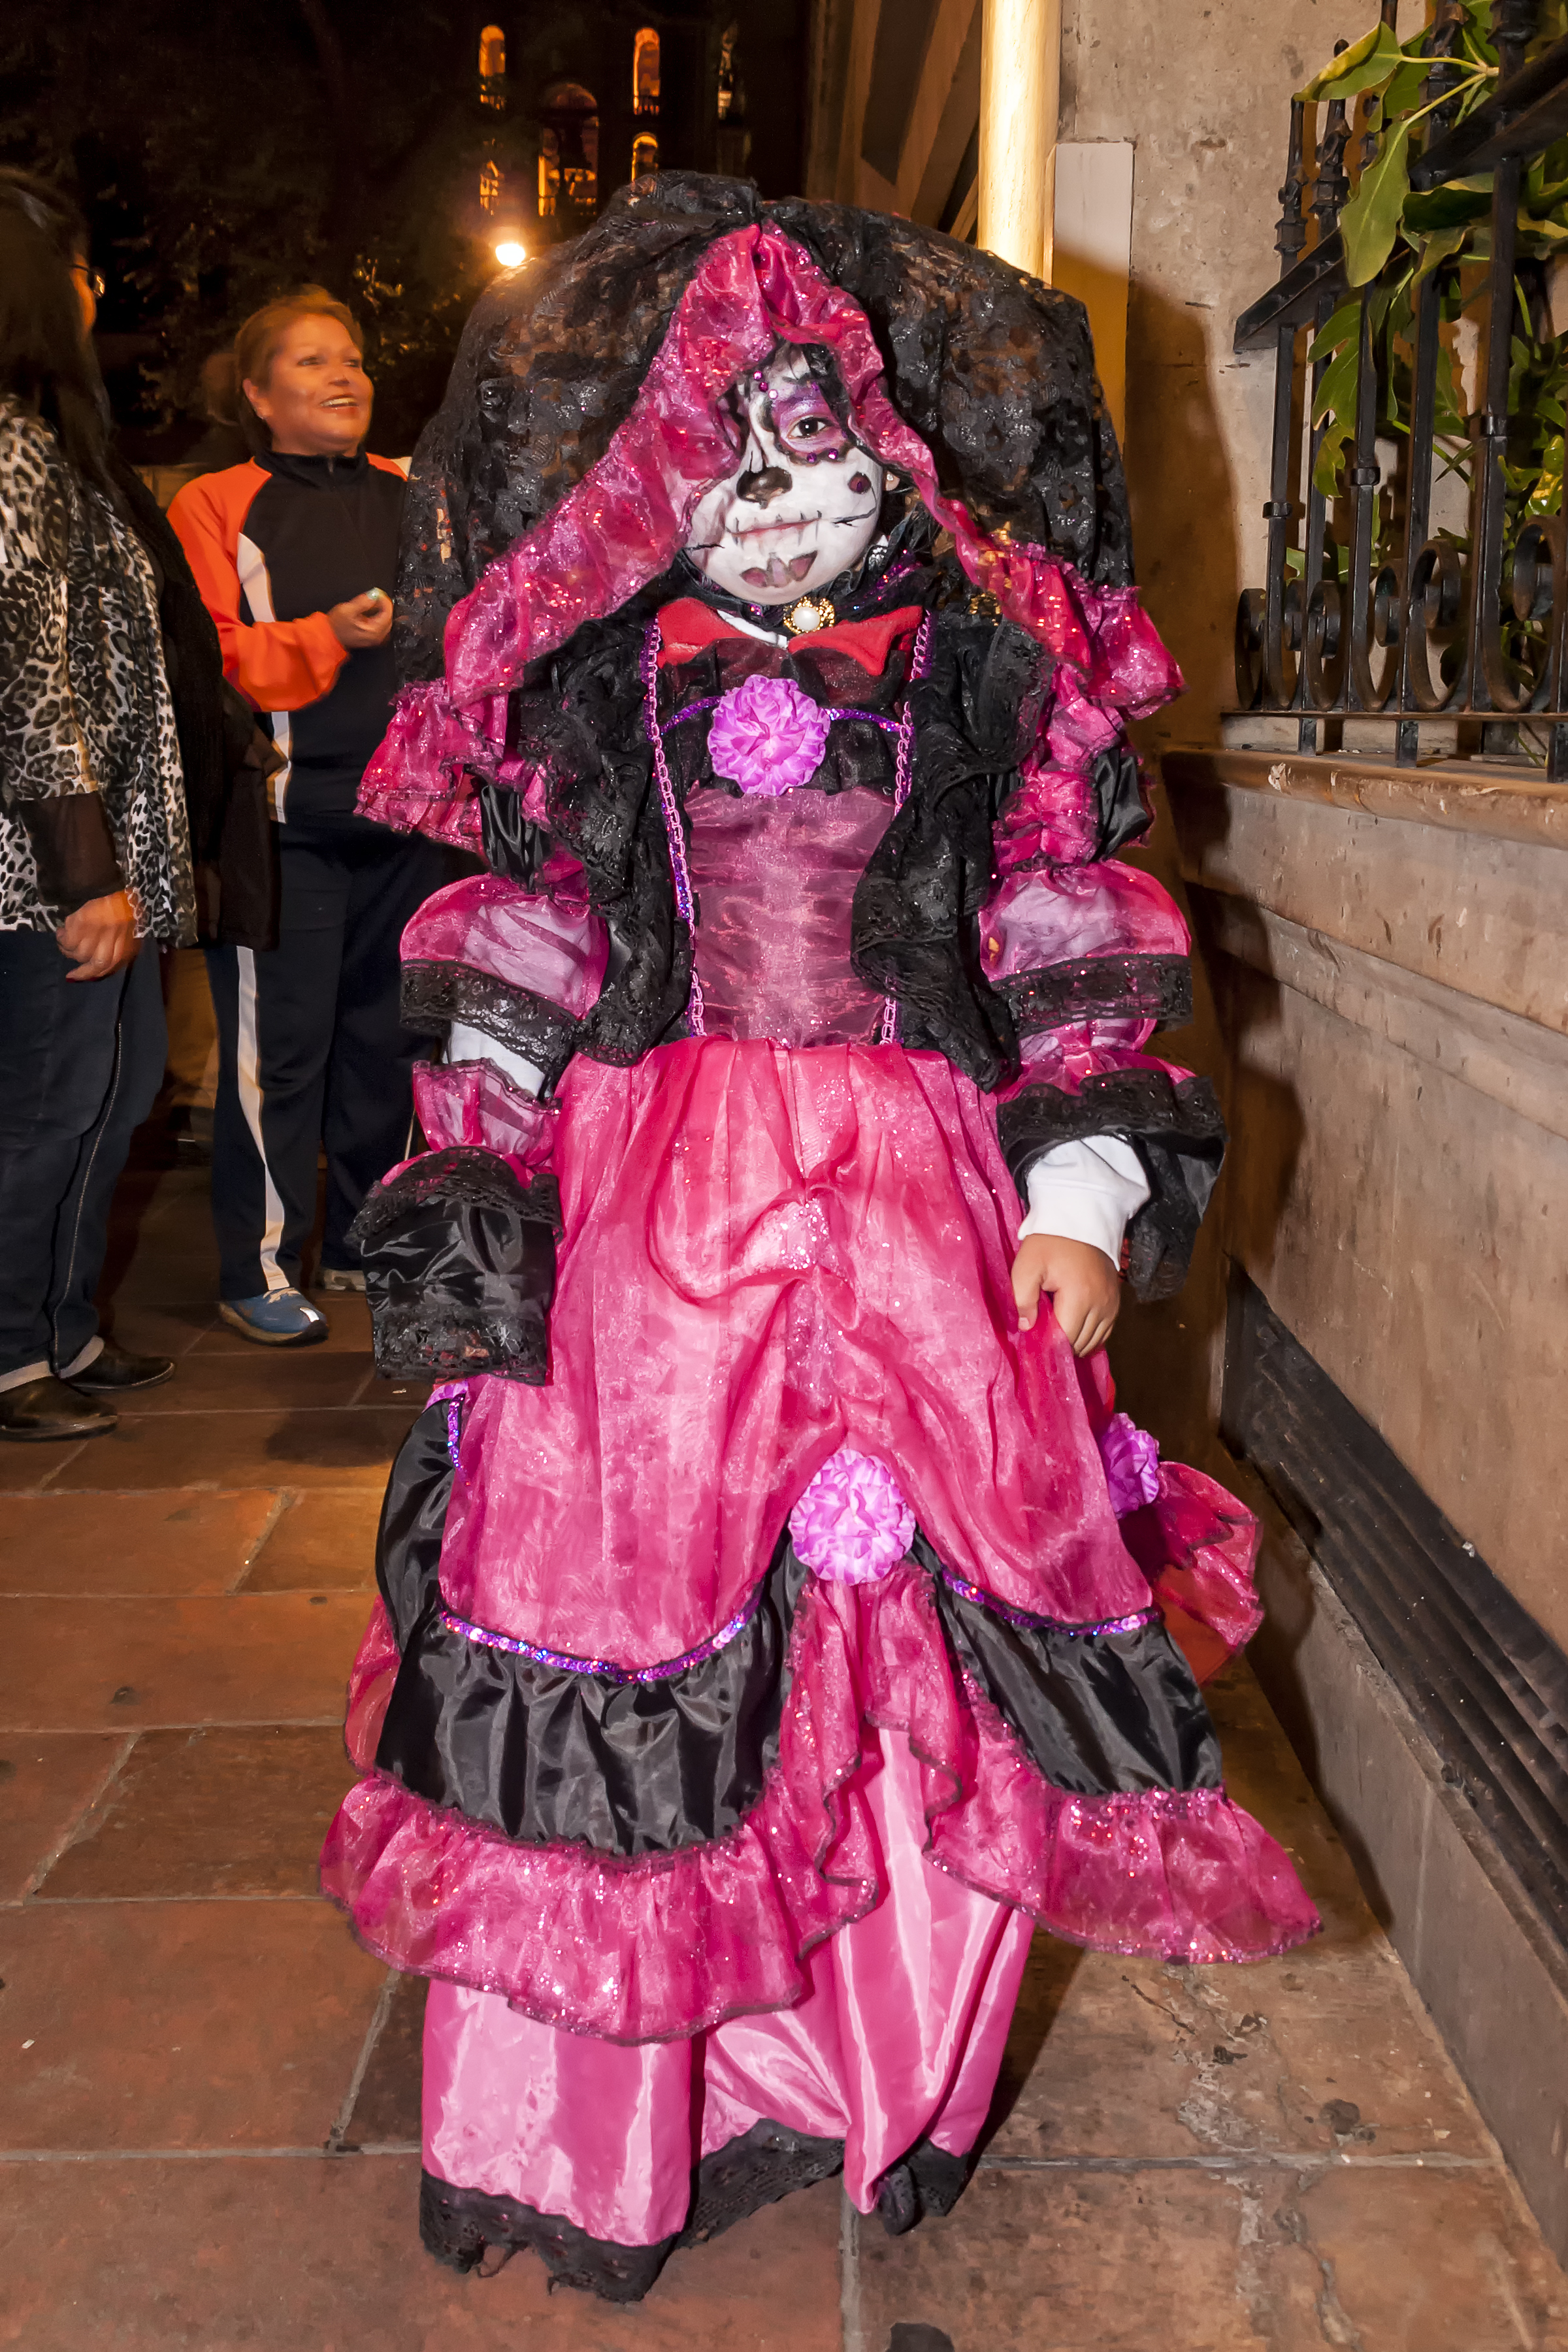 Fileniña Catrina 10jpg Wikimedia Commons